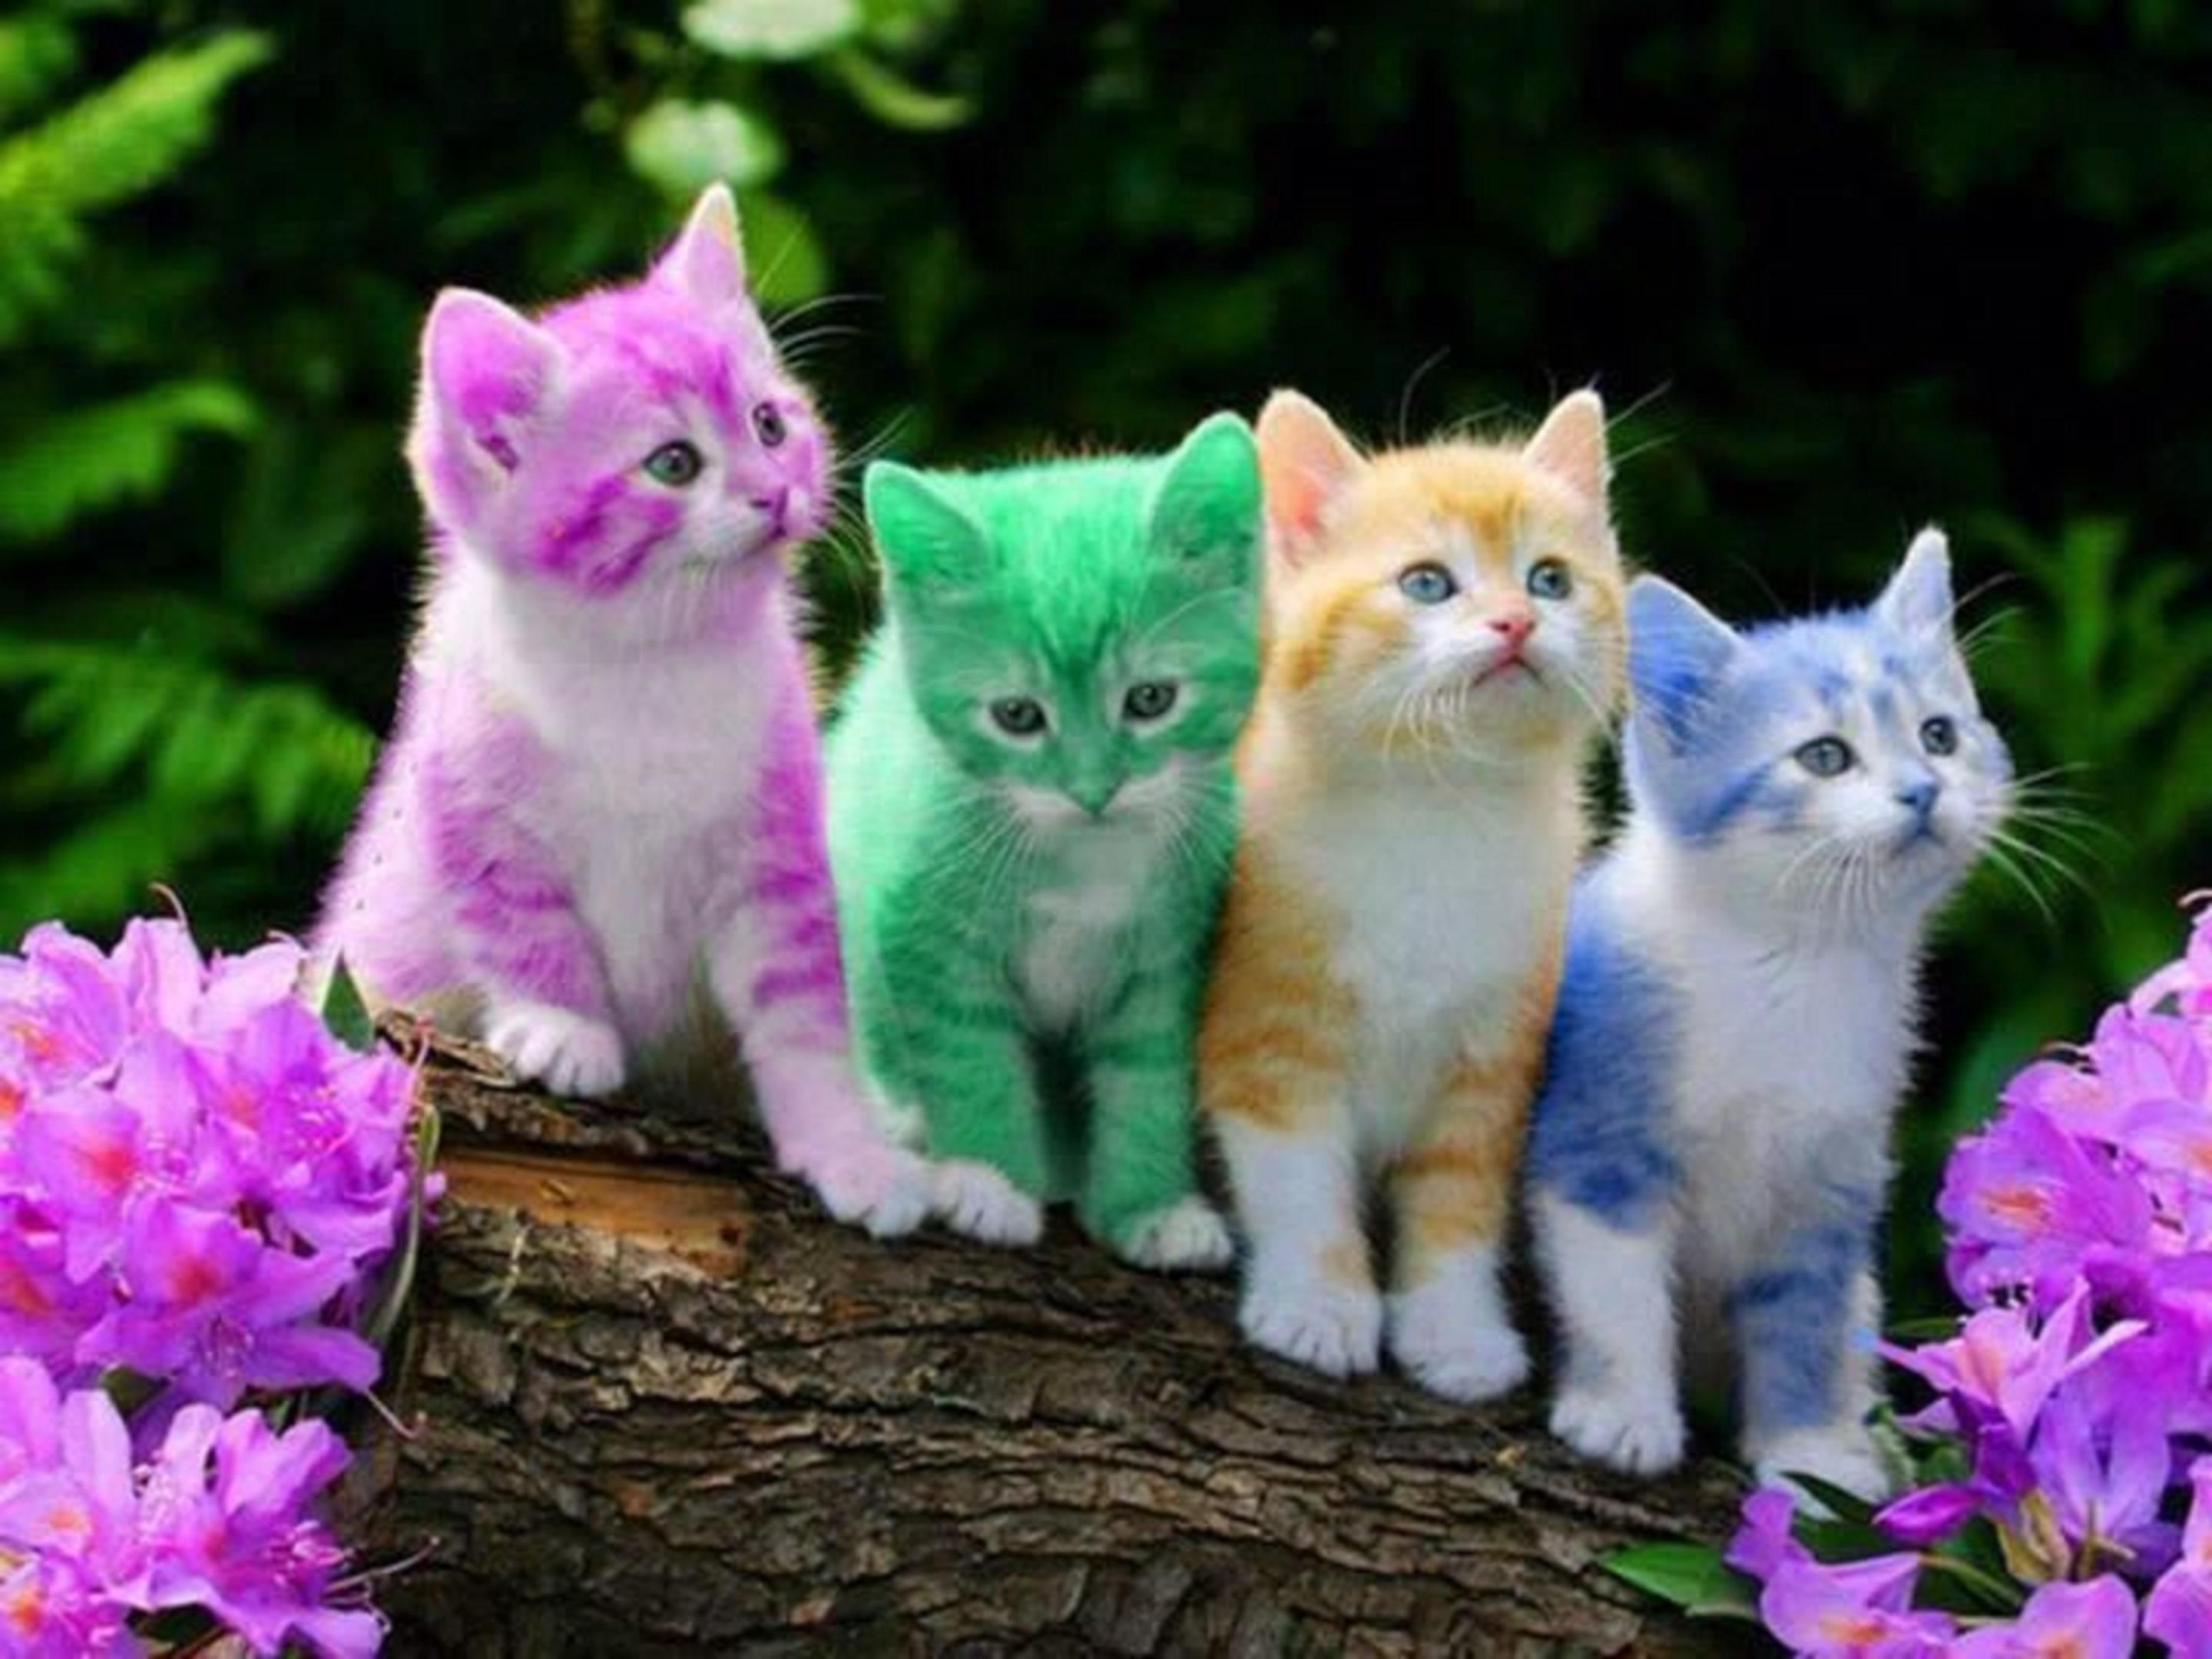 Color cats like - Cute Kitten Colorful I Love Kittens More Pics Like This On The Website Click